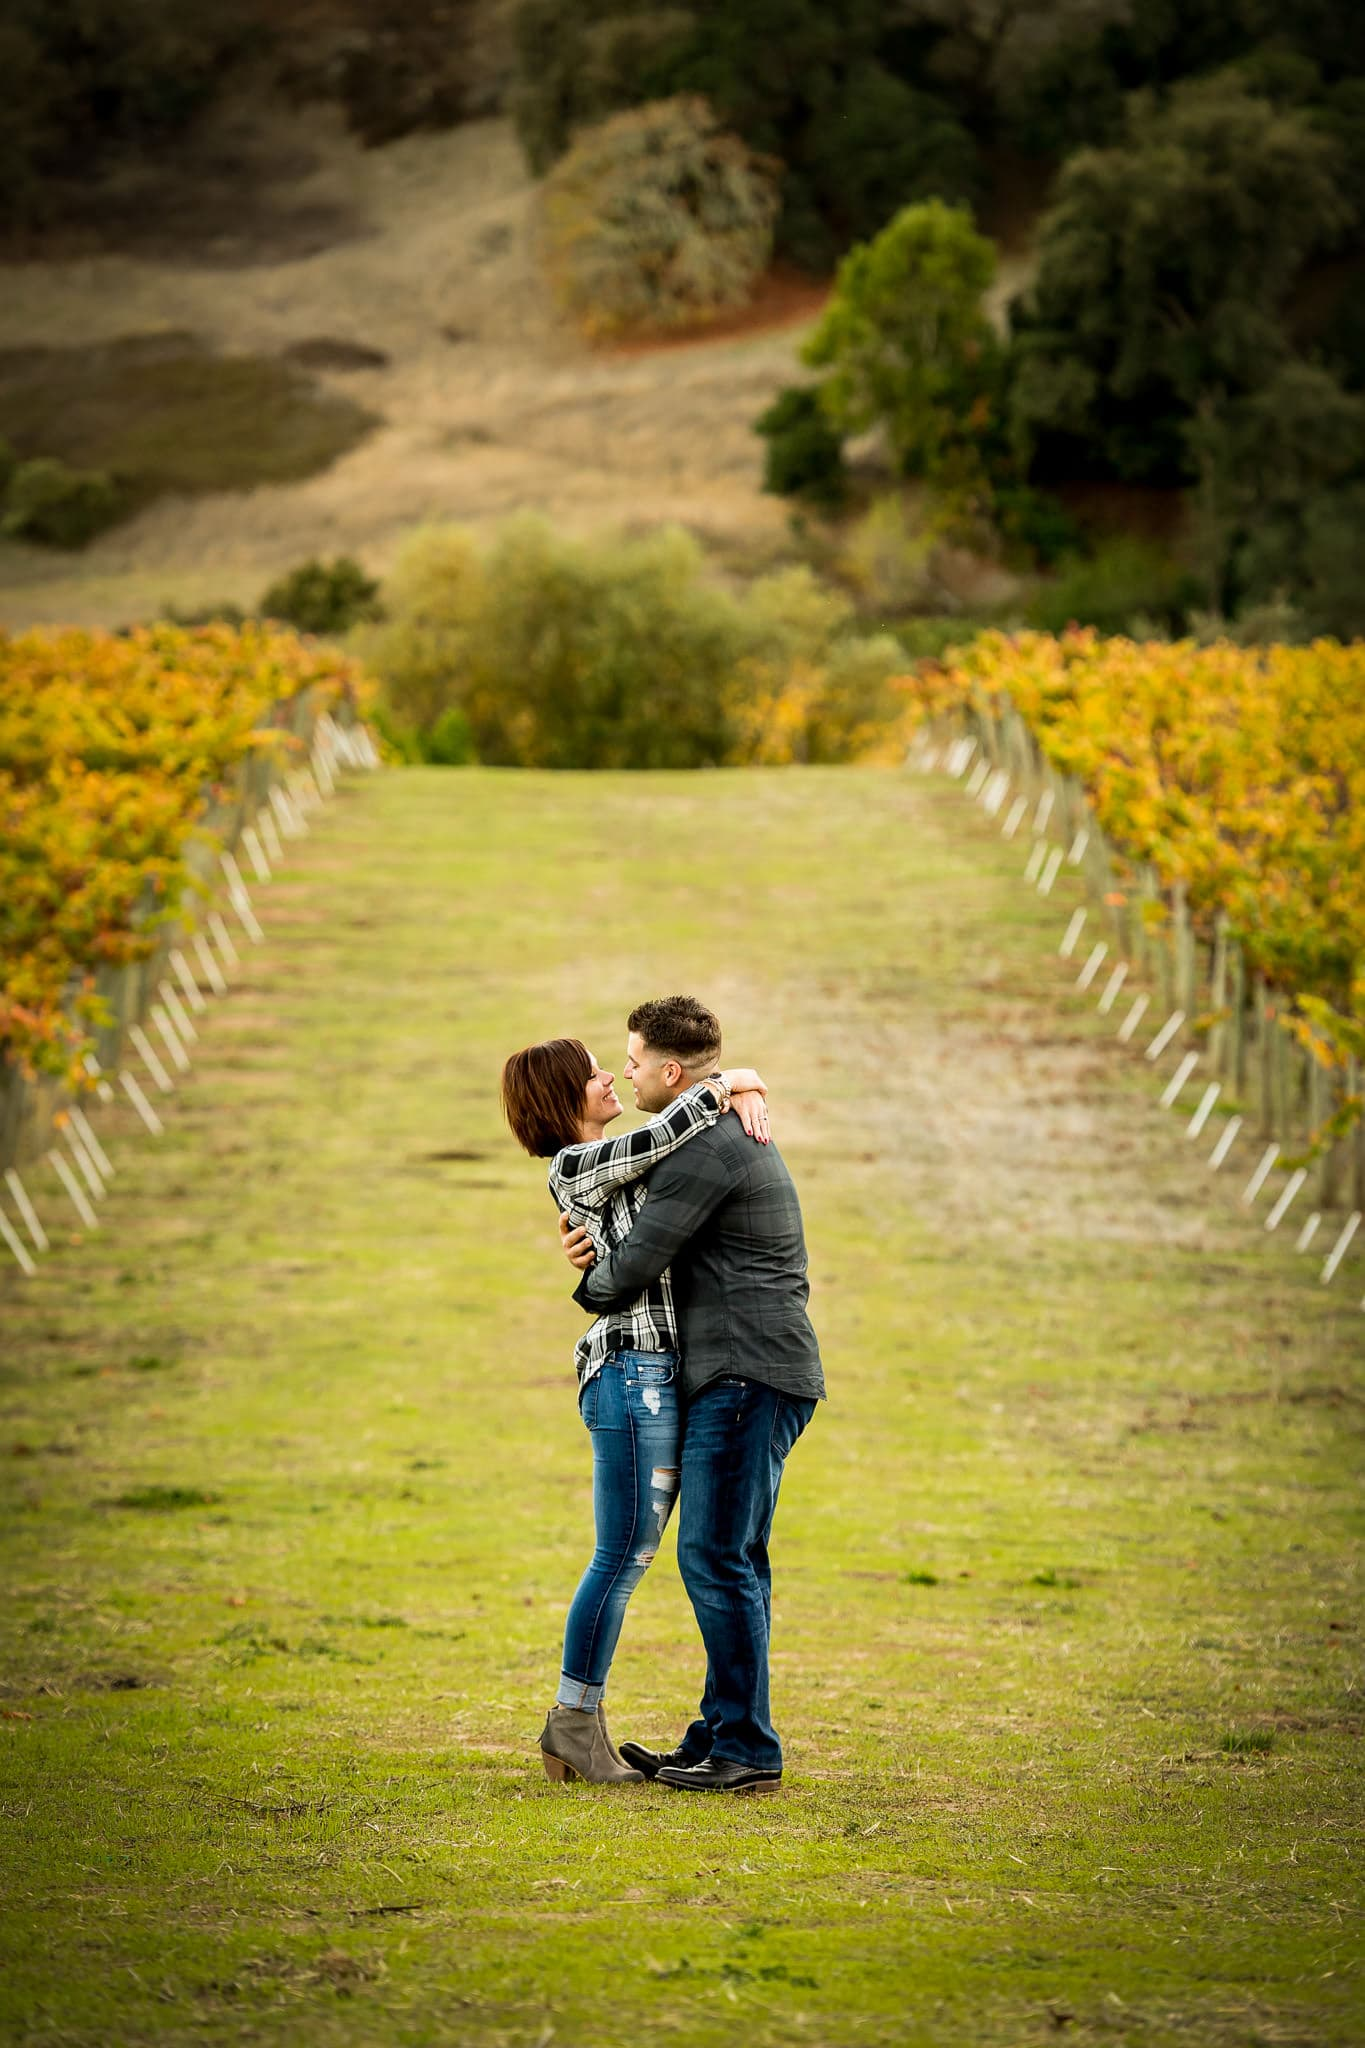 An engaged couple embraces amongst colorful rows of grapes at Artesa Winery's Vineyard in Napa Valley